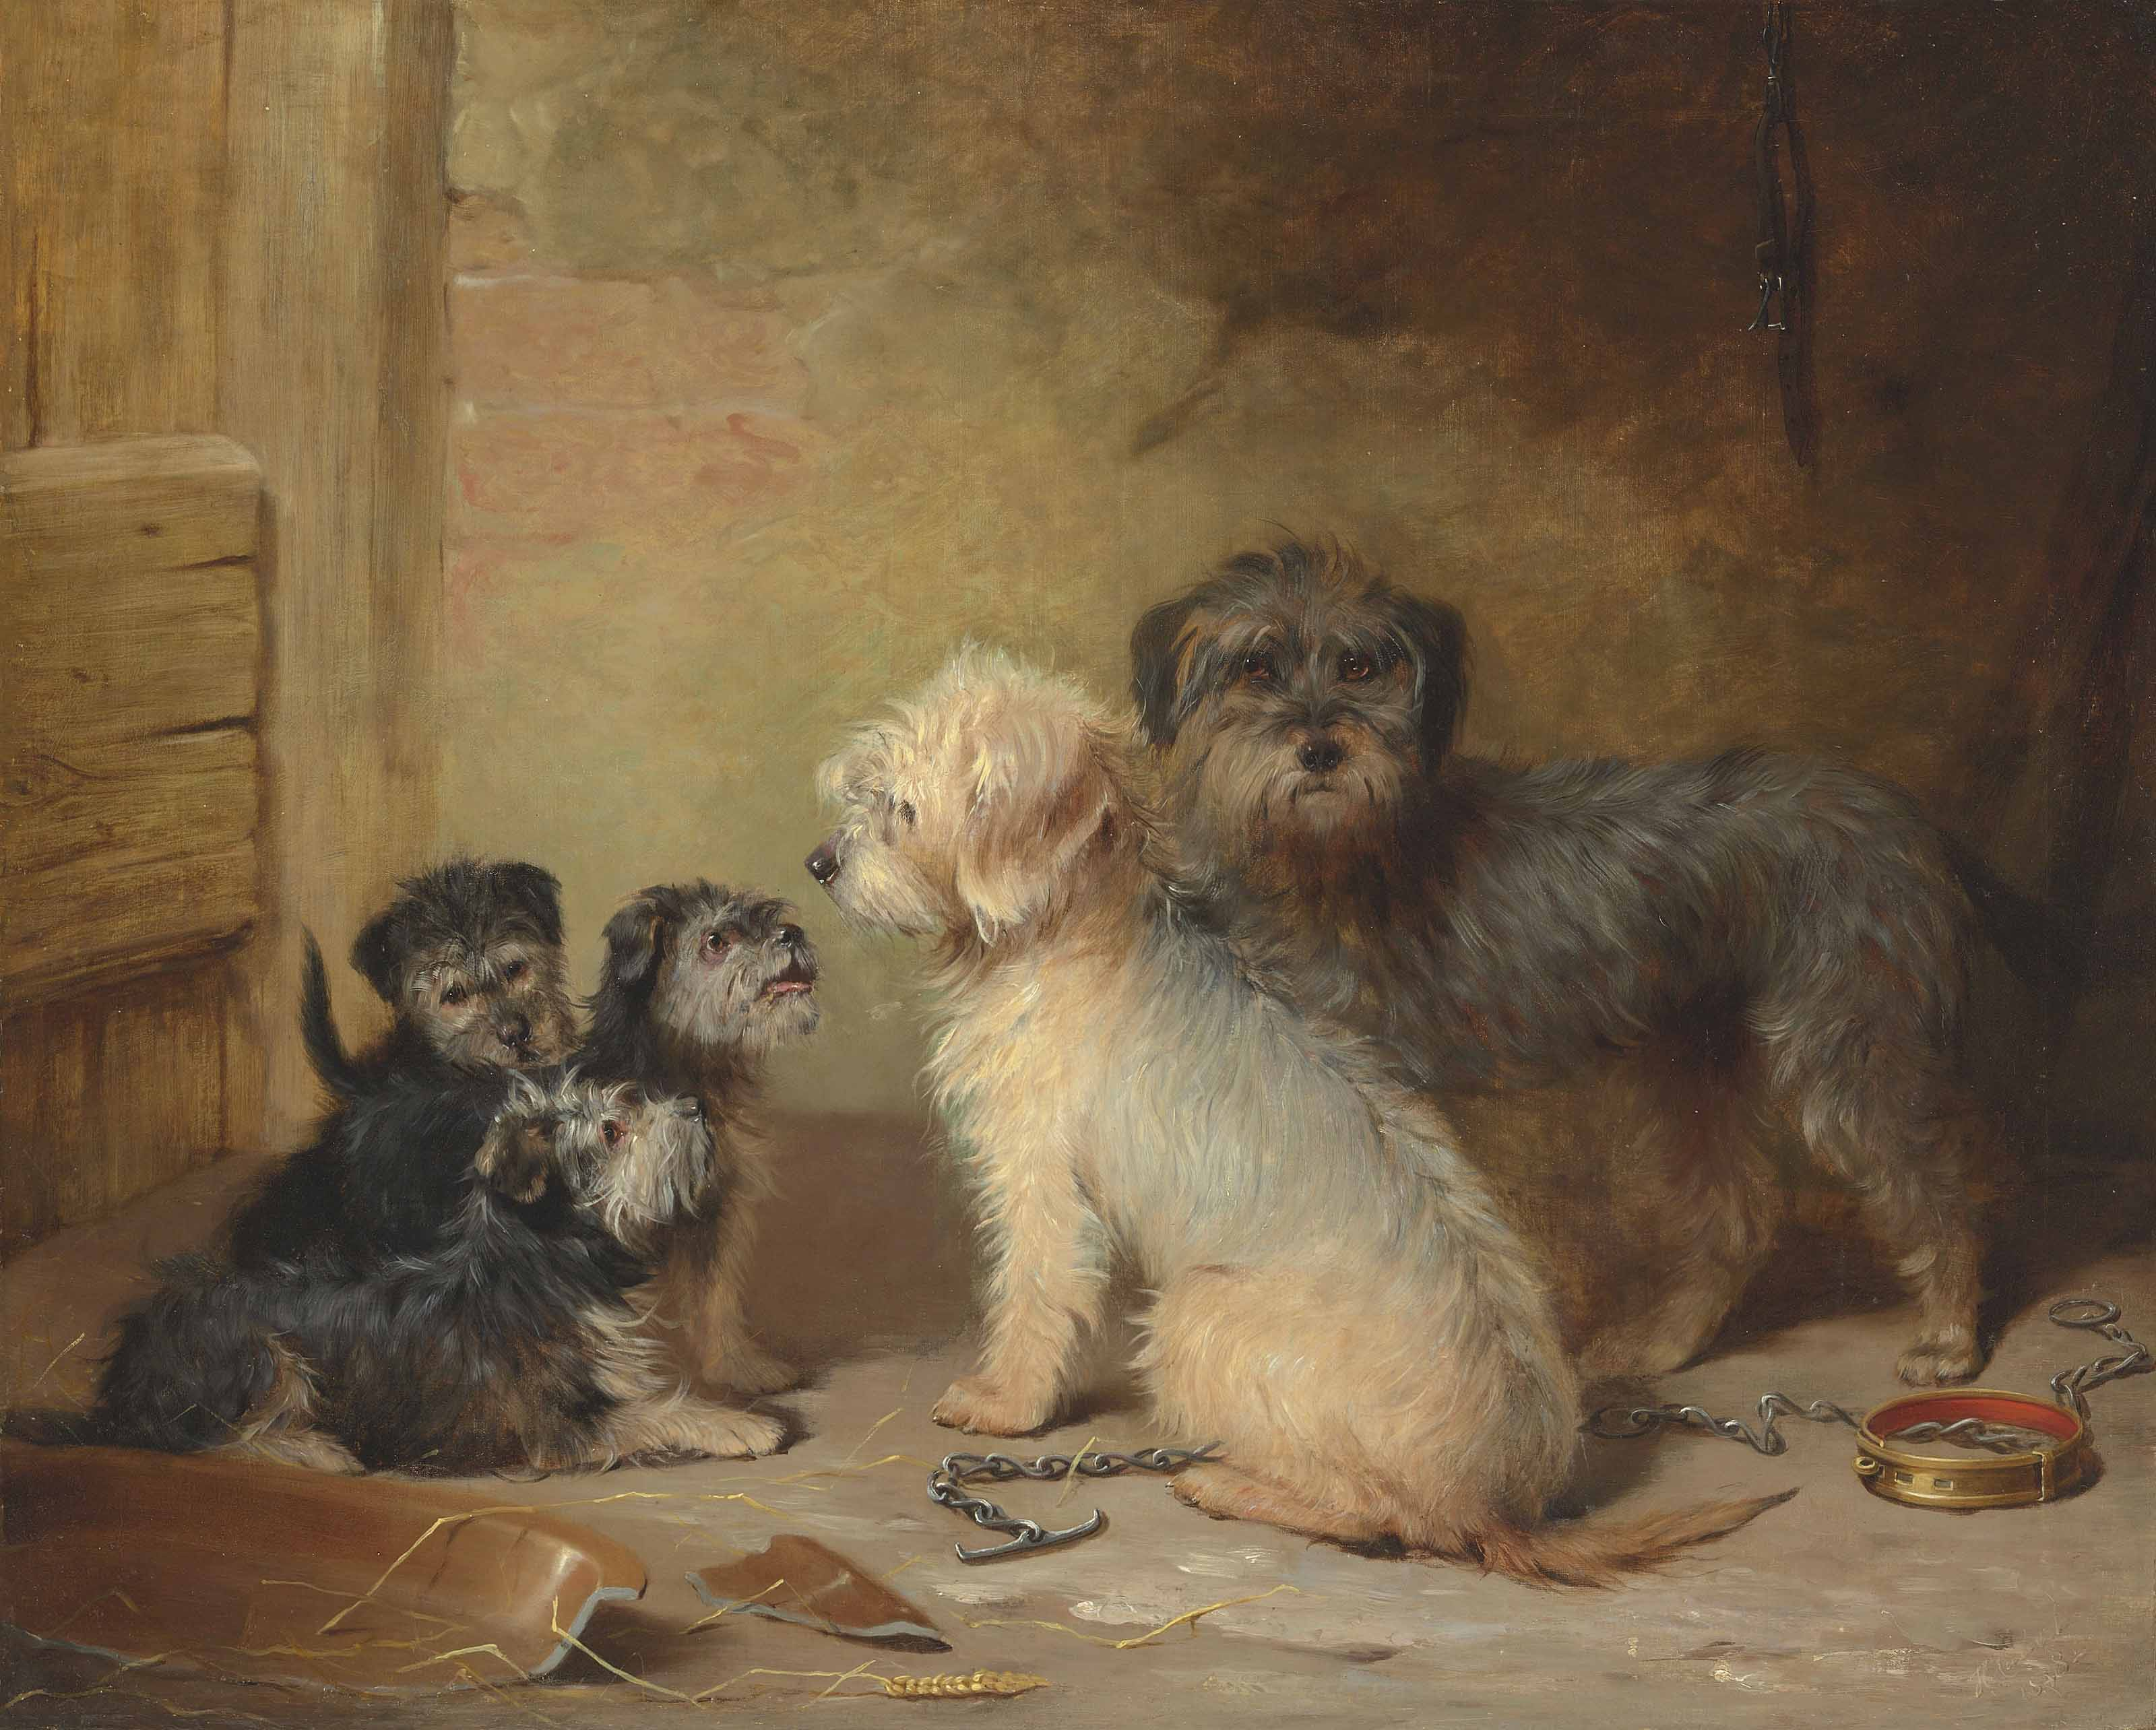 The Dandie Dinmont family